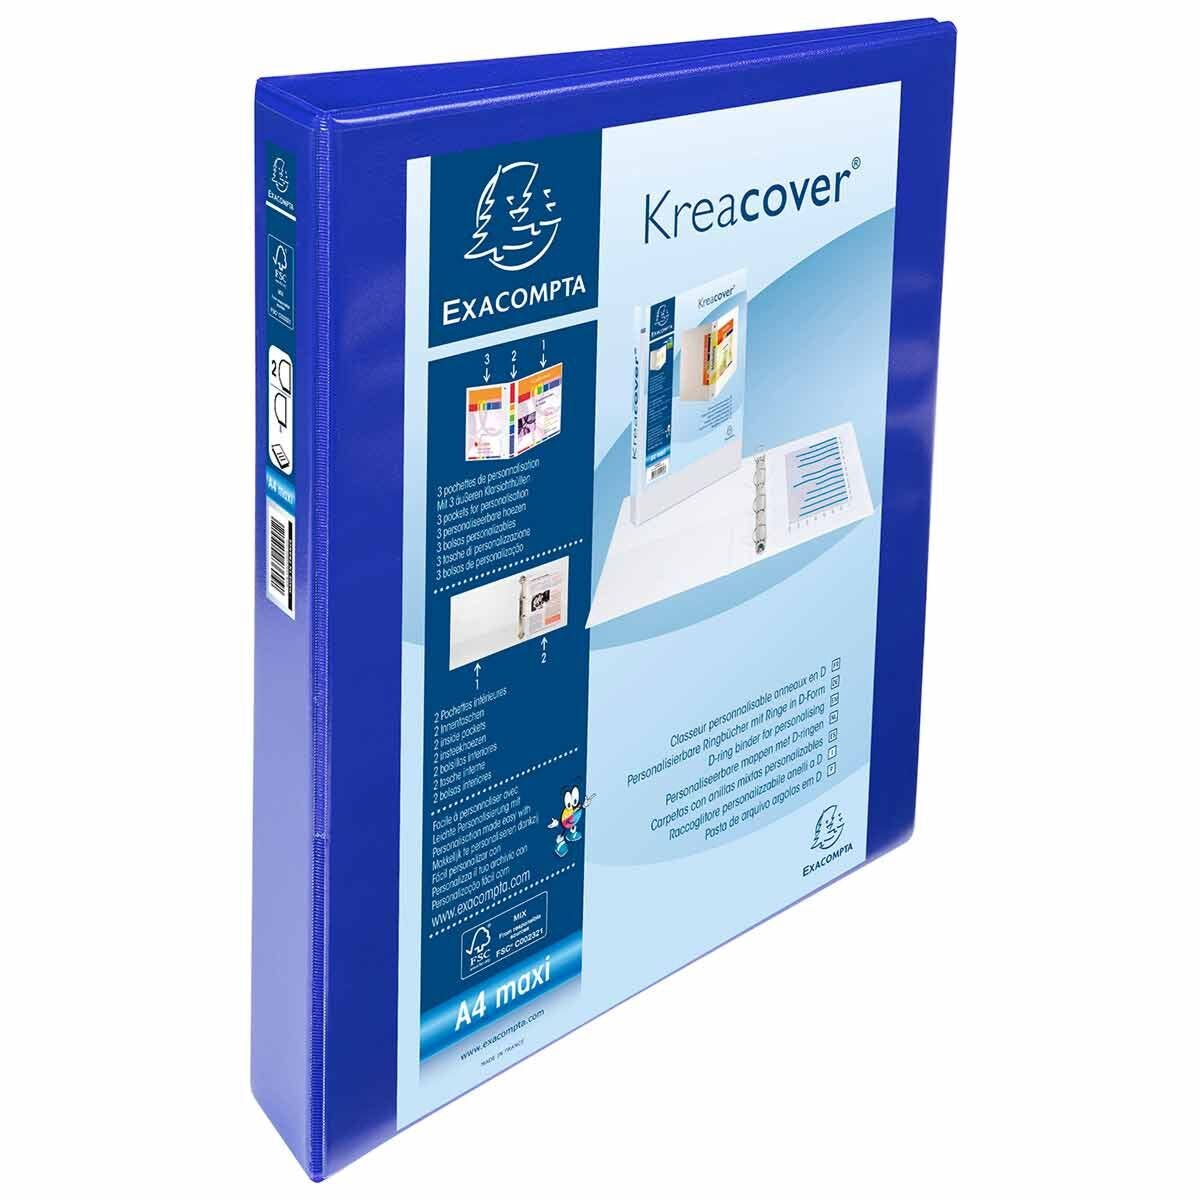 Exacompta Kreacover Ring Binder 2 Ring 25mm A4 Plus Pack of 10 Blue